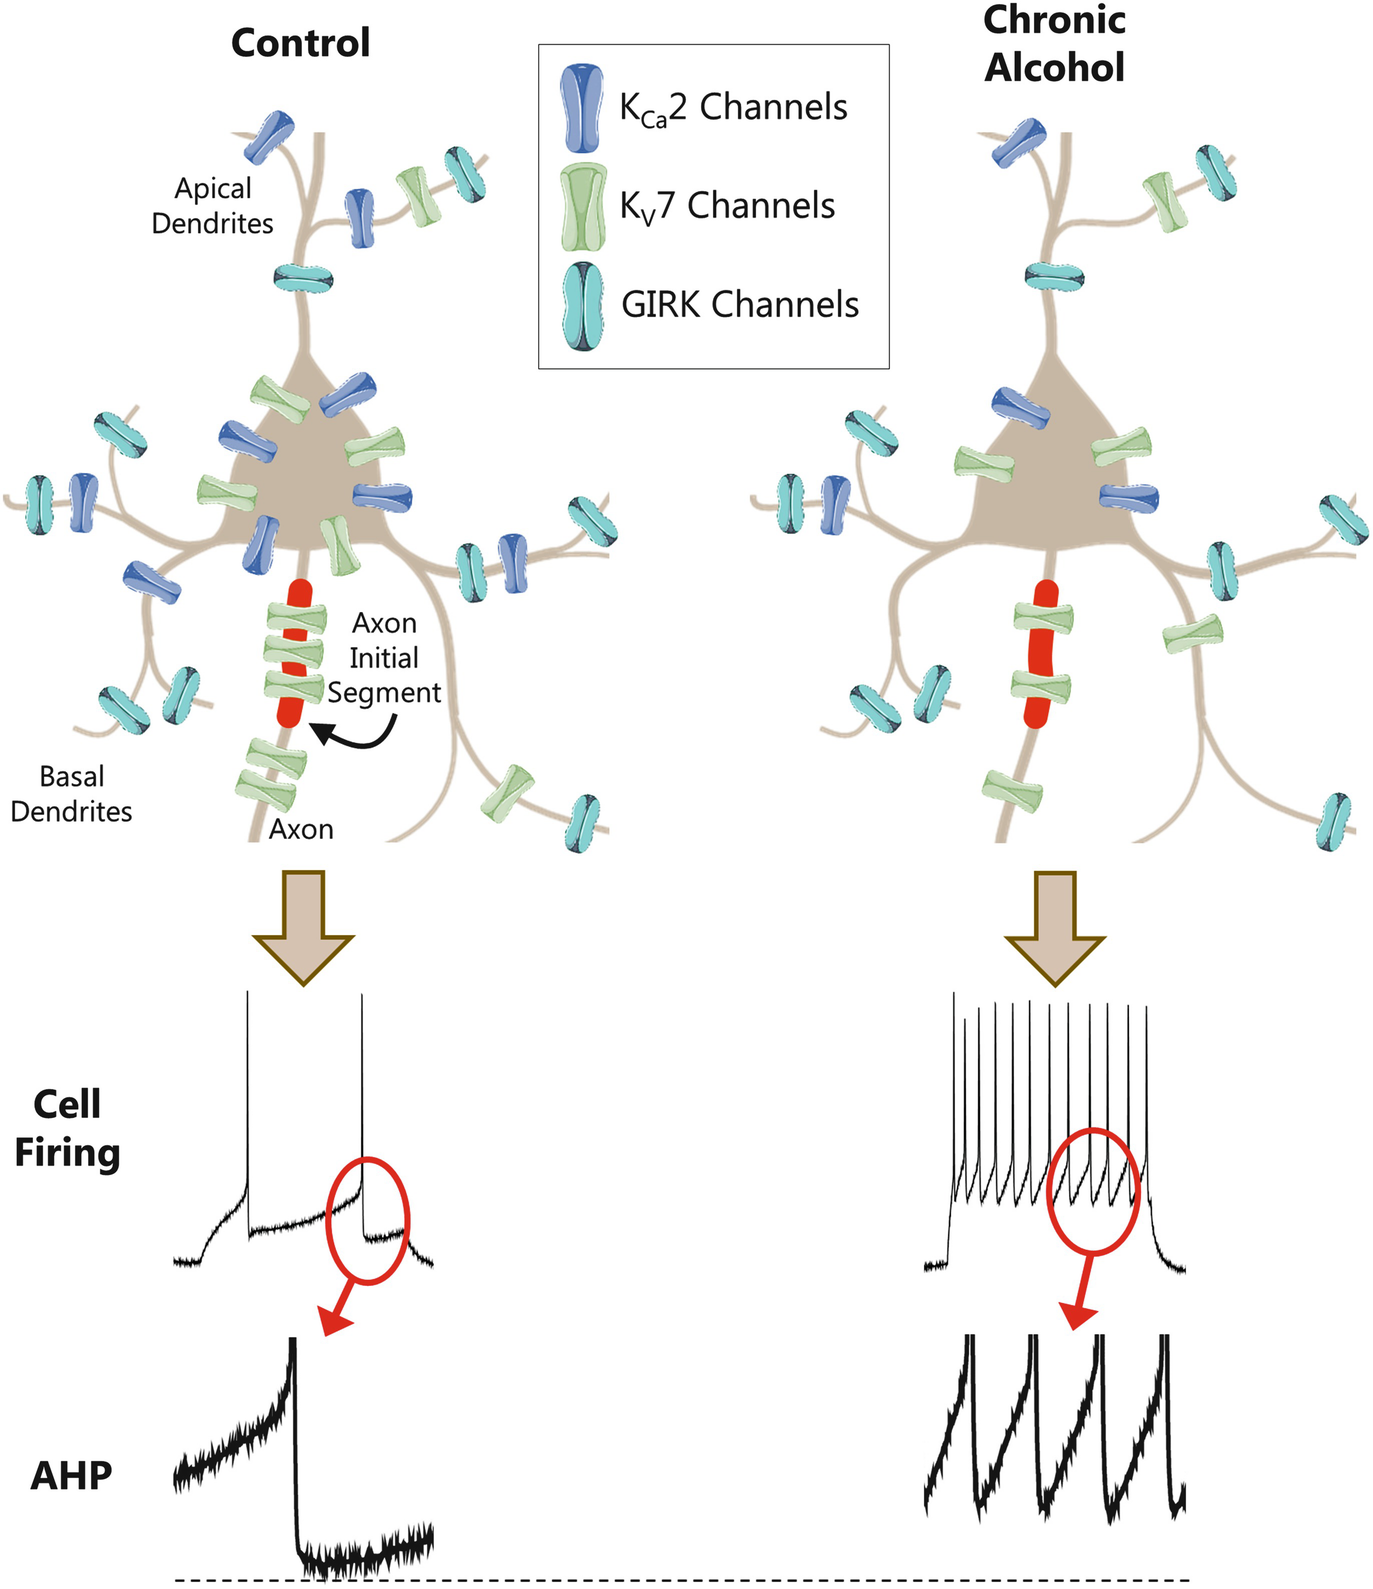 Chronic Alcohol Intrinsic Excitability And Potassium Channels Circuit Diagram Likewise Simple 555 Timer Circuits Besides Stress Open Image In New Window